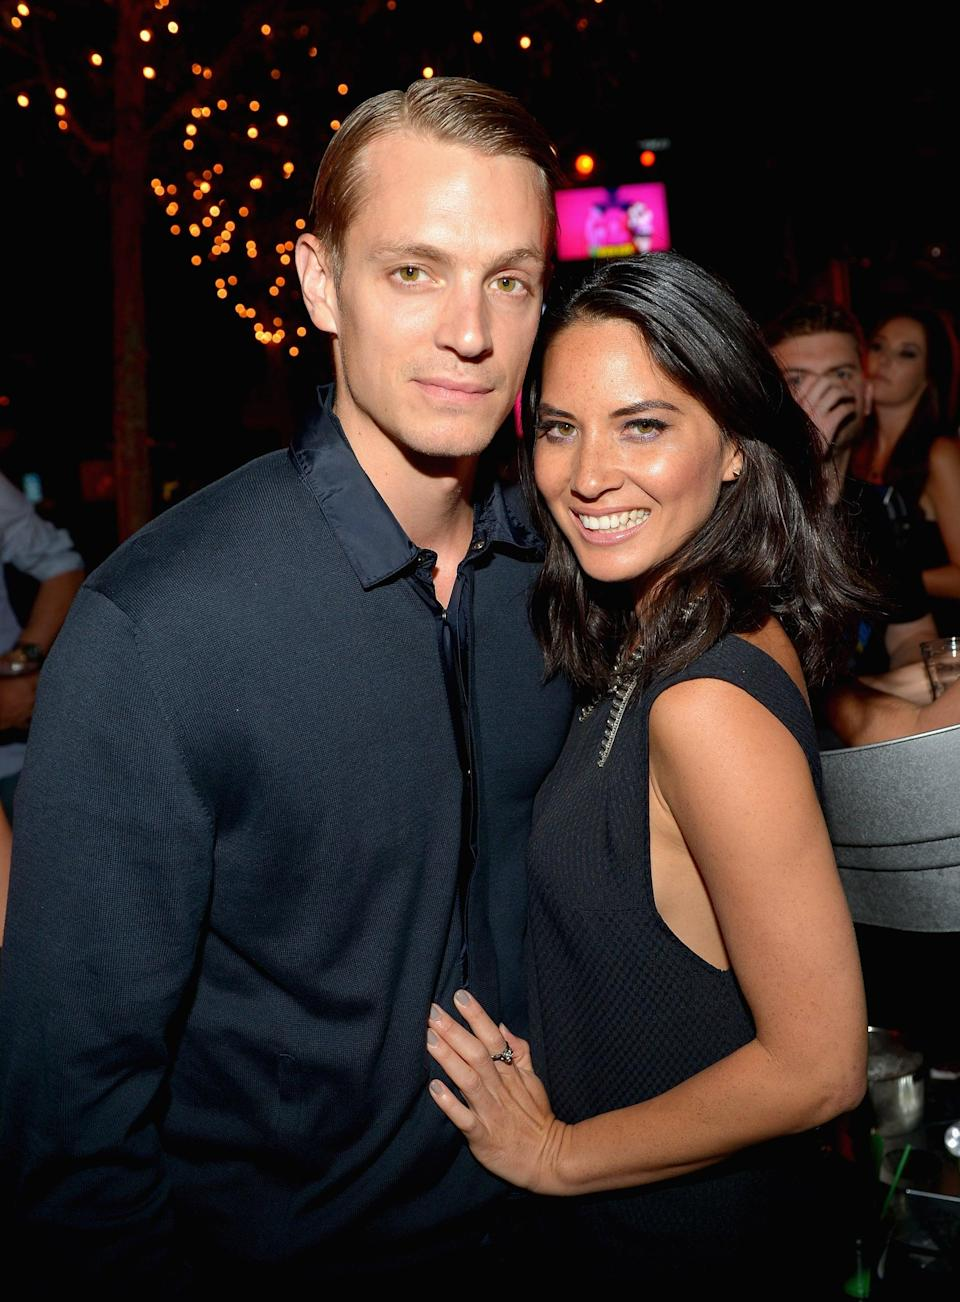 """<p><a href=""""https://www.usmagazine.com/celebrity-news/news/olivia-munn-joel-kinnaman-split-after-two-years-2014294/"""" class=""""link rapid-noclick-resp"""" rel=""""nofollow noopener"""" target=""""_blank"""" data-ylk=""""slk:Olivia began romancing the fellow actor"""">Olivia began romancing the fellow actor</a> in March 2012, but they called it quits after two years together. A source told <b>Us Weekly</b> that the reason for their split had to do with distance since Joel was filming in Toronto and Olivia was in LA at the time.</p>"""